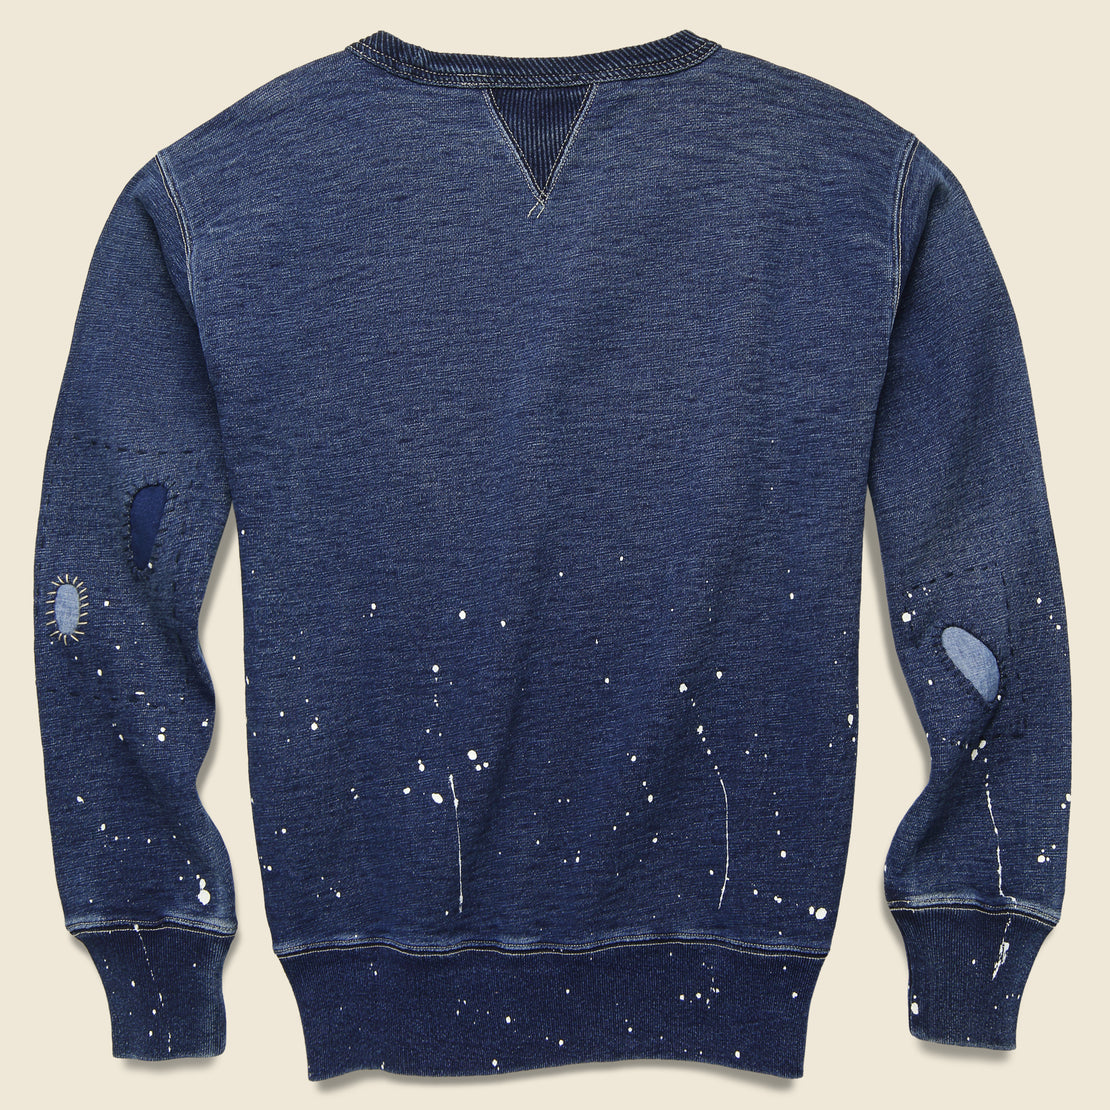 Distressed Double V Crewneck - Washed Blue Indigo